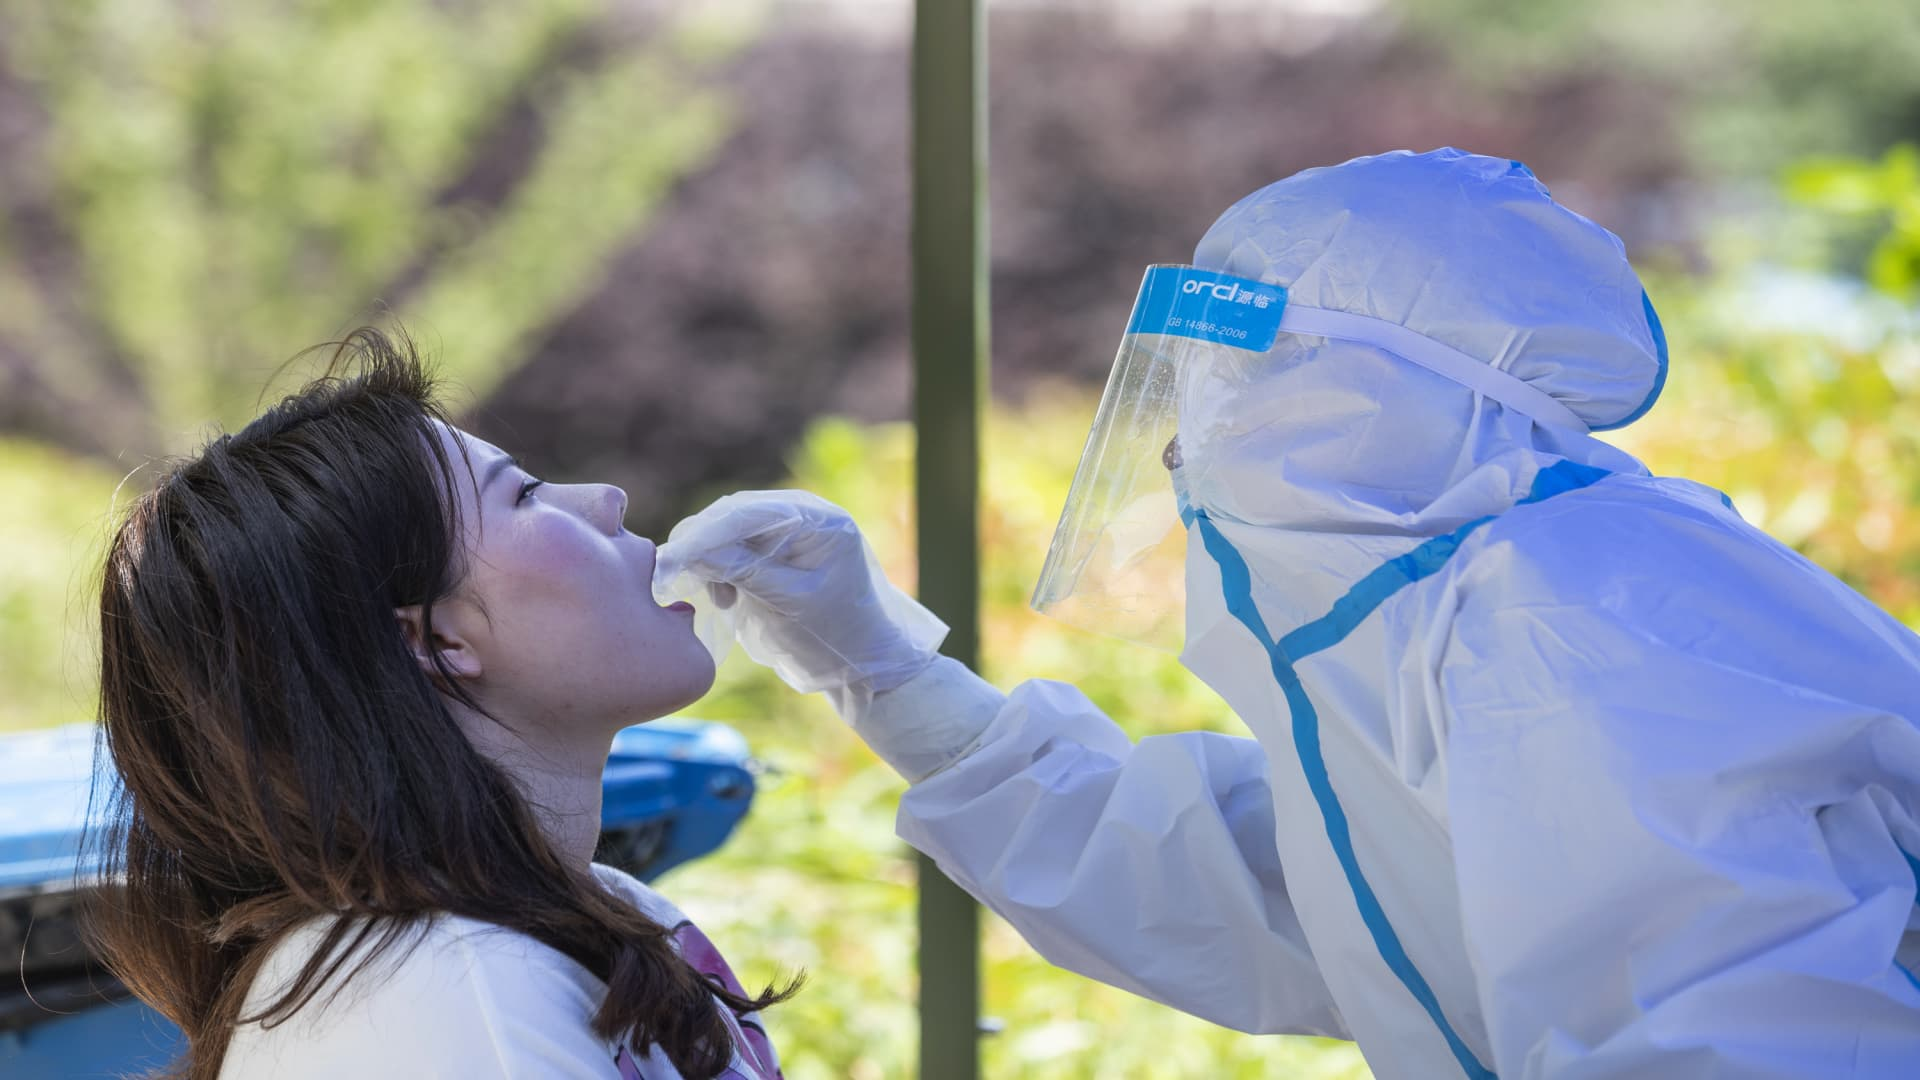 A medical worker takes a swab sample from a student to be tested for the Covid-19 coronavirus at Wuhan University, on the first day of classes in Wuhan on June 8, 2020.